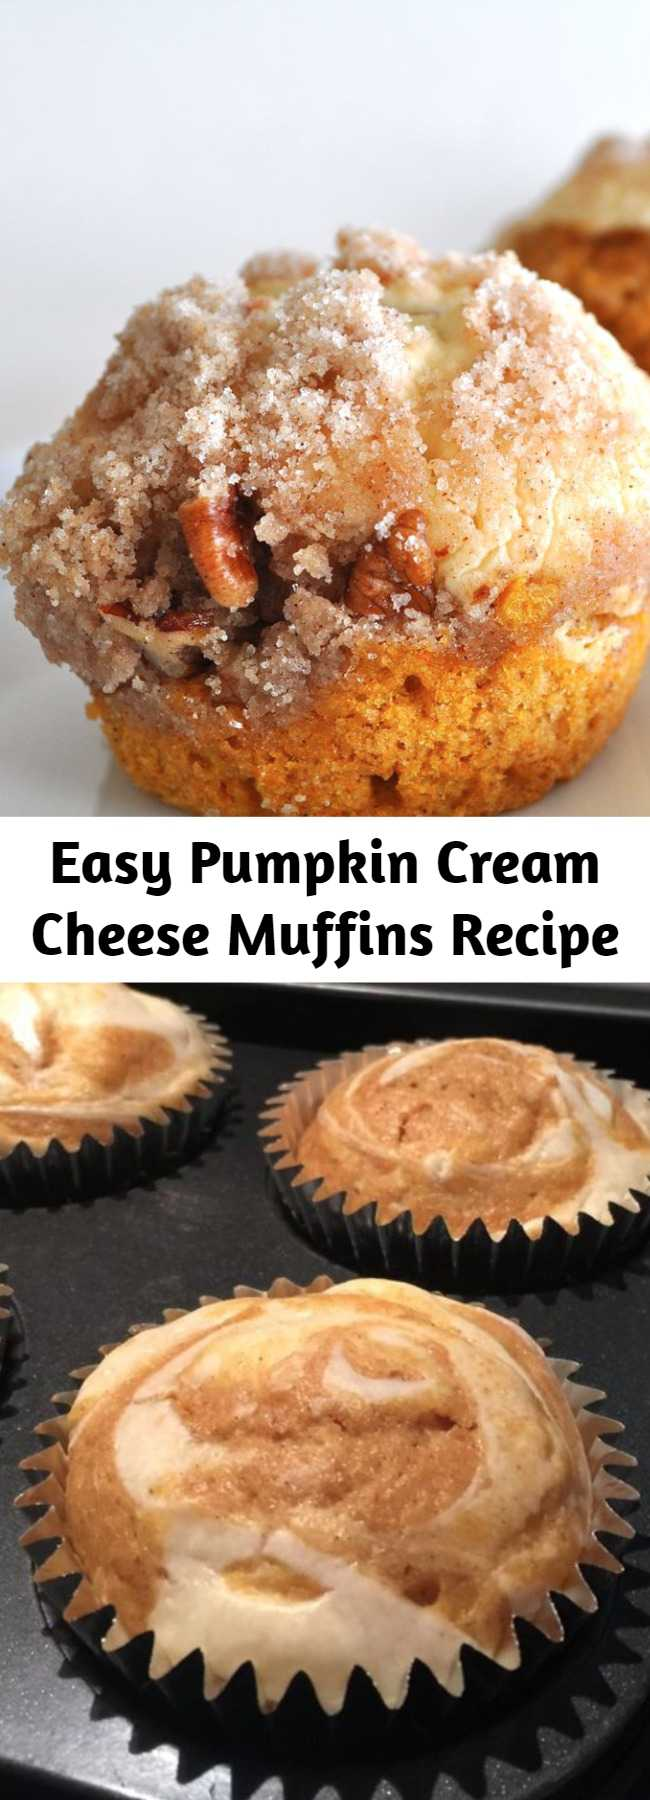 Easy Pumpkin Cream Cheese Muffins Recipe - These muffins are the best! They are moist and very delicious. Not only taste great but looking so good as well! You'll be glad you made this recipe for pumpkin muffins with a cream cheese filling and a streusel topping. #breakfastrecipes #brunchrecipes #breakfastideas #brunchideas #muffins #muffinrecipes #baking #bakingrecipes